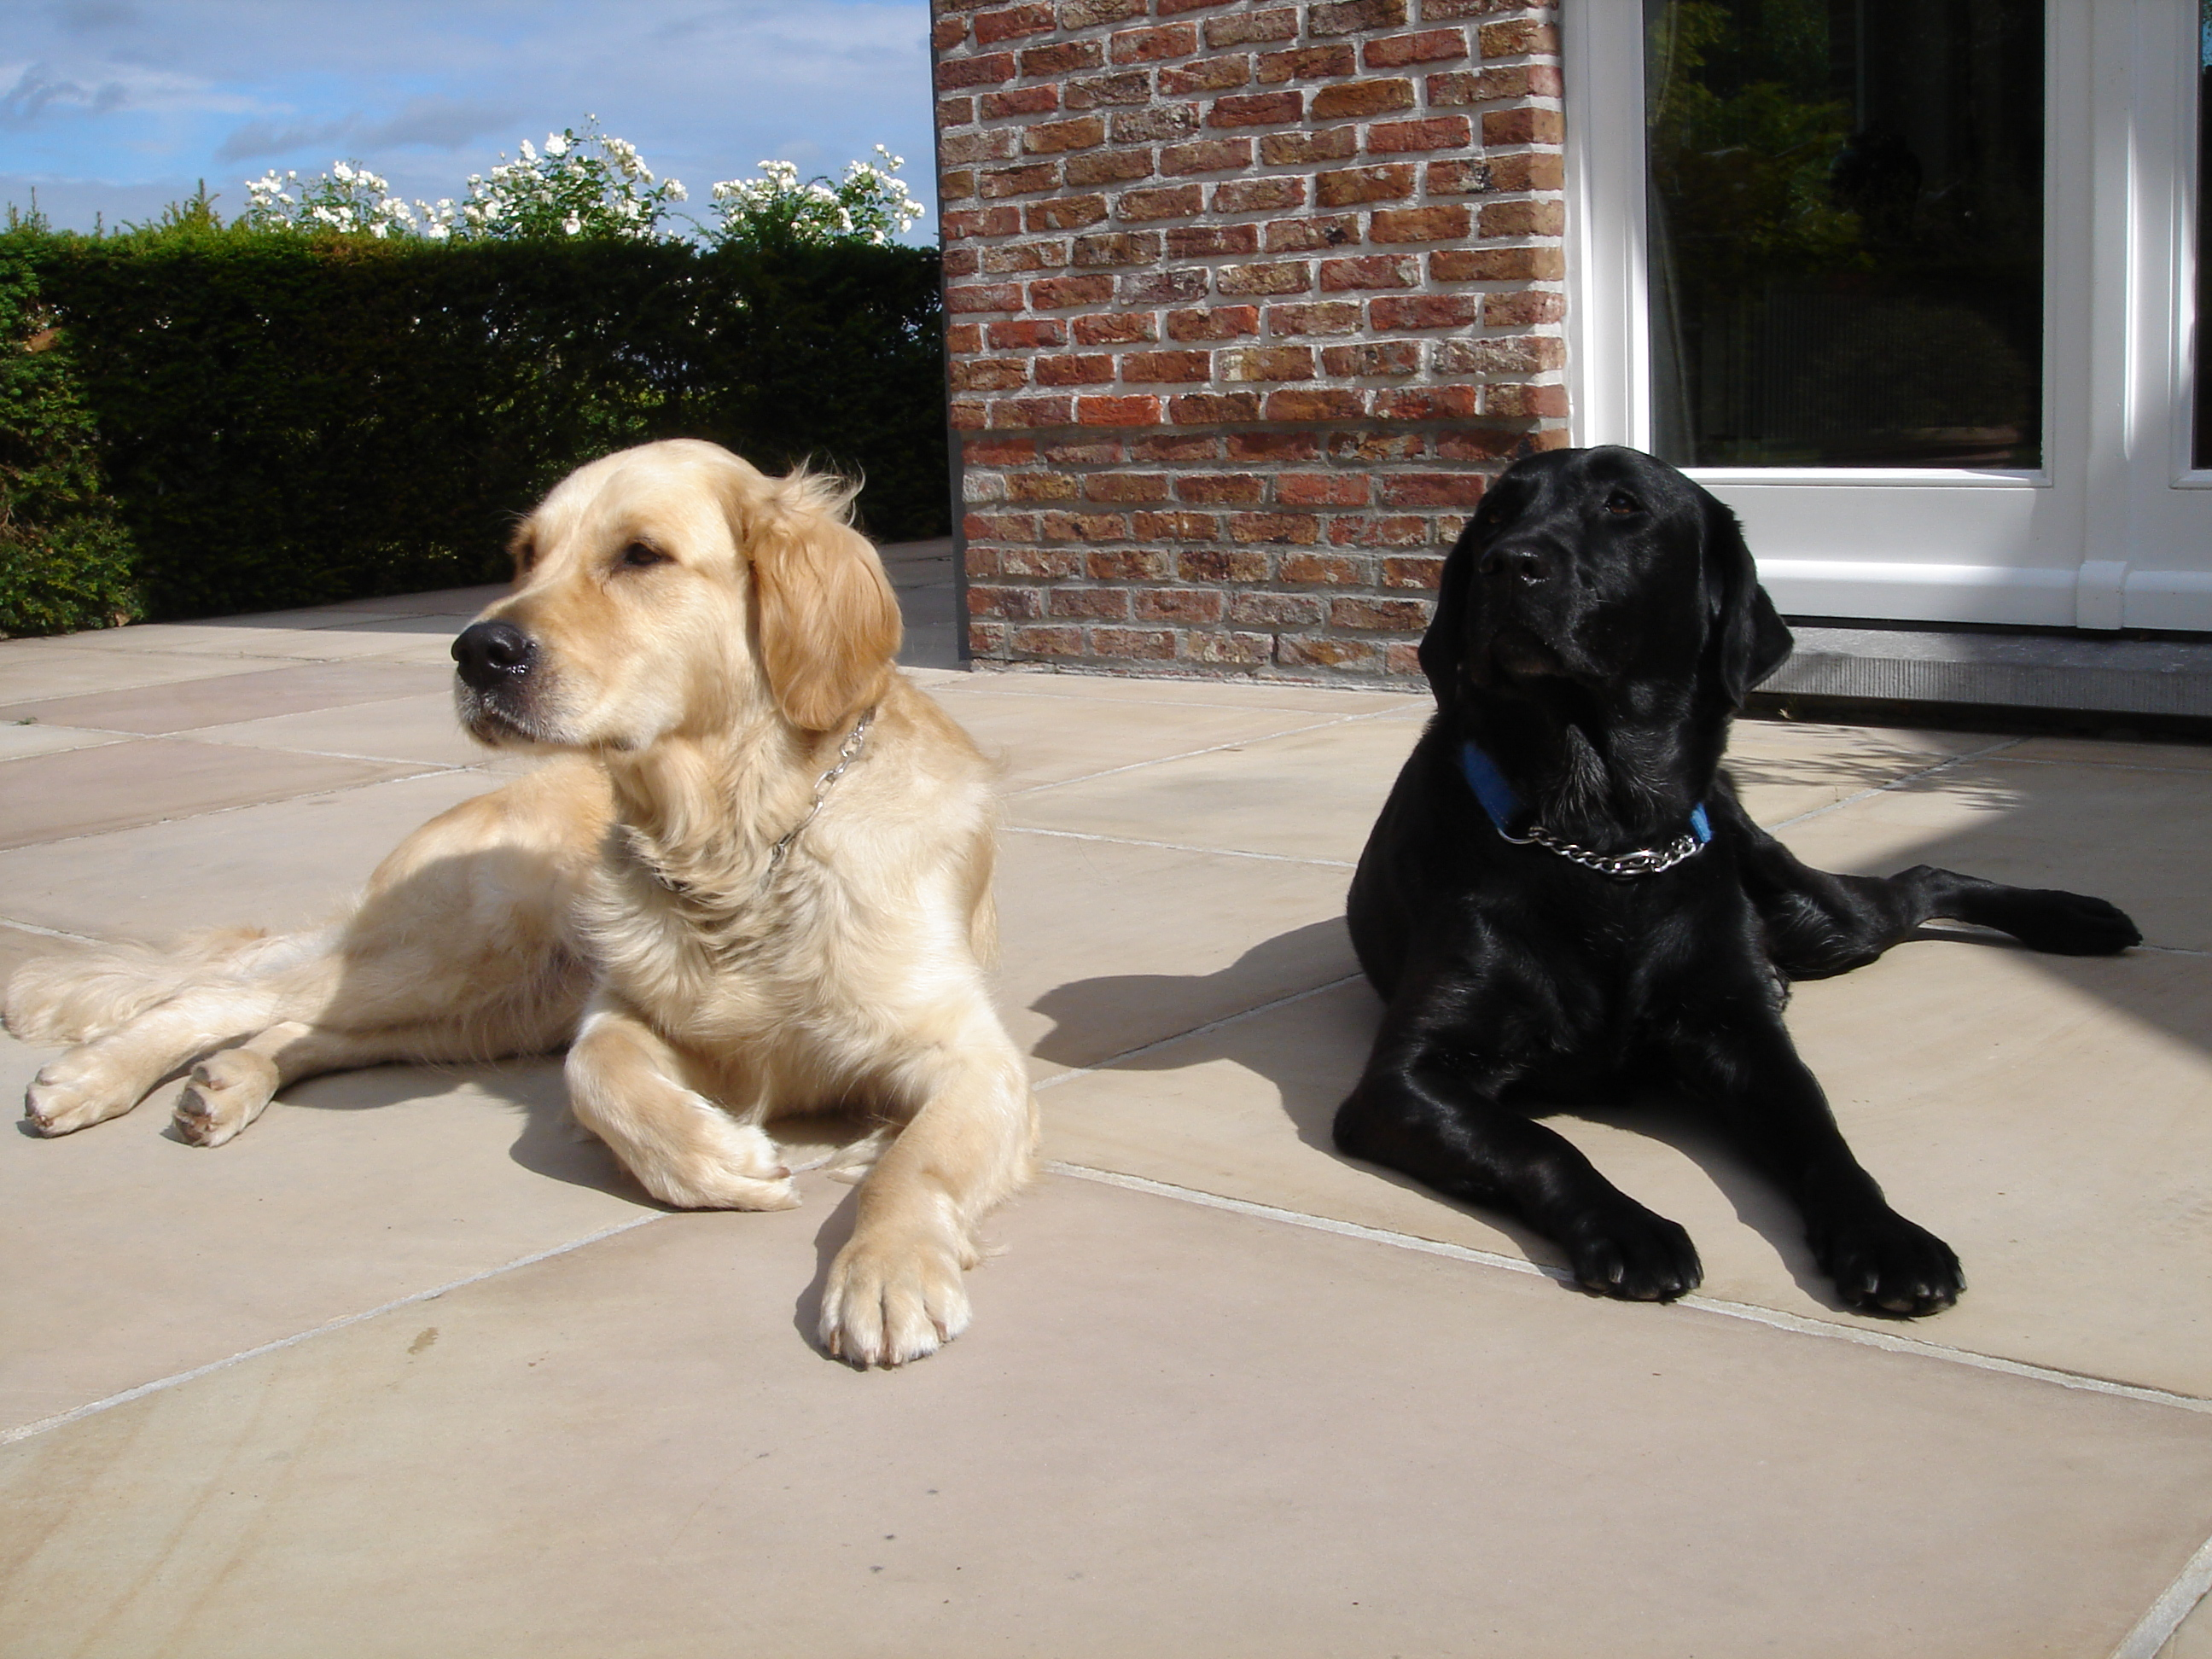 Golden Retriever and Black Labrador